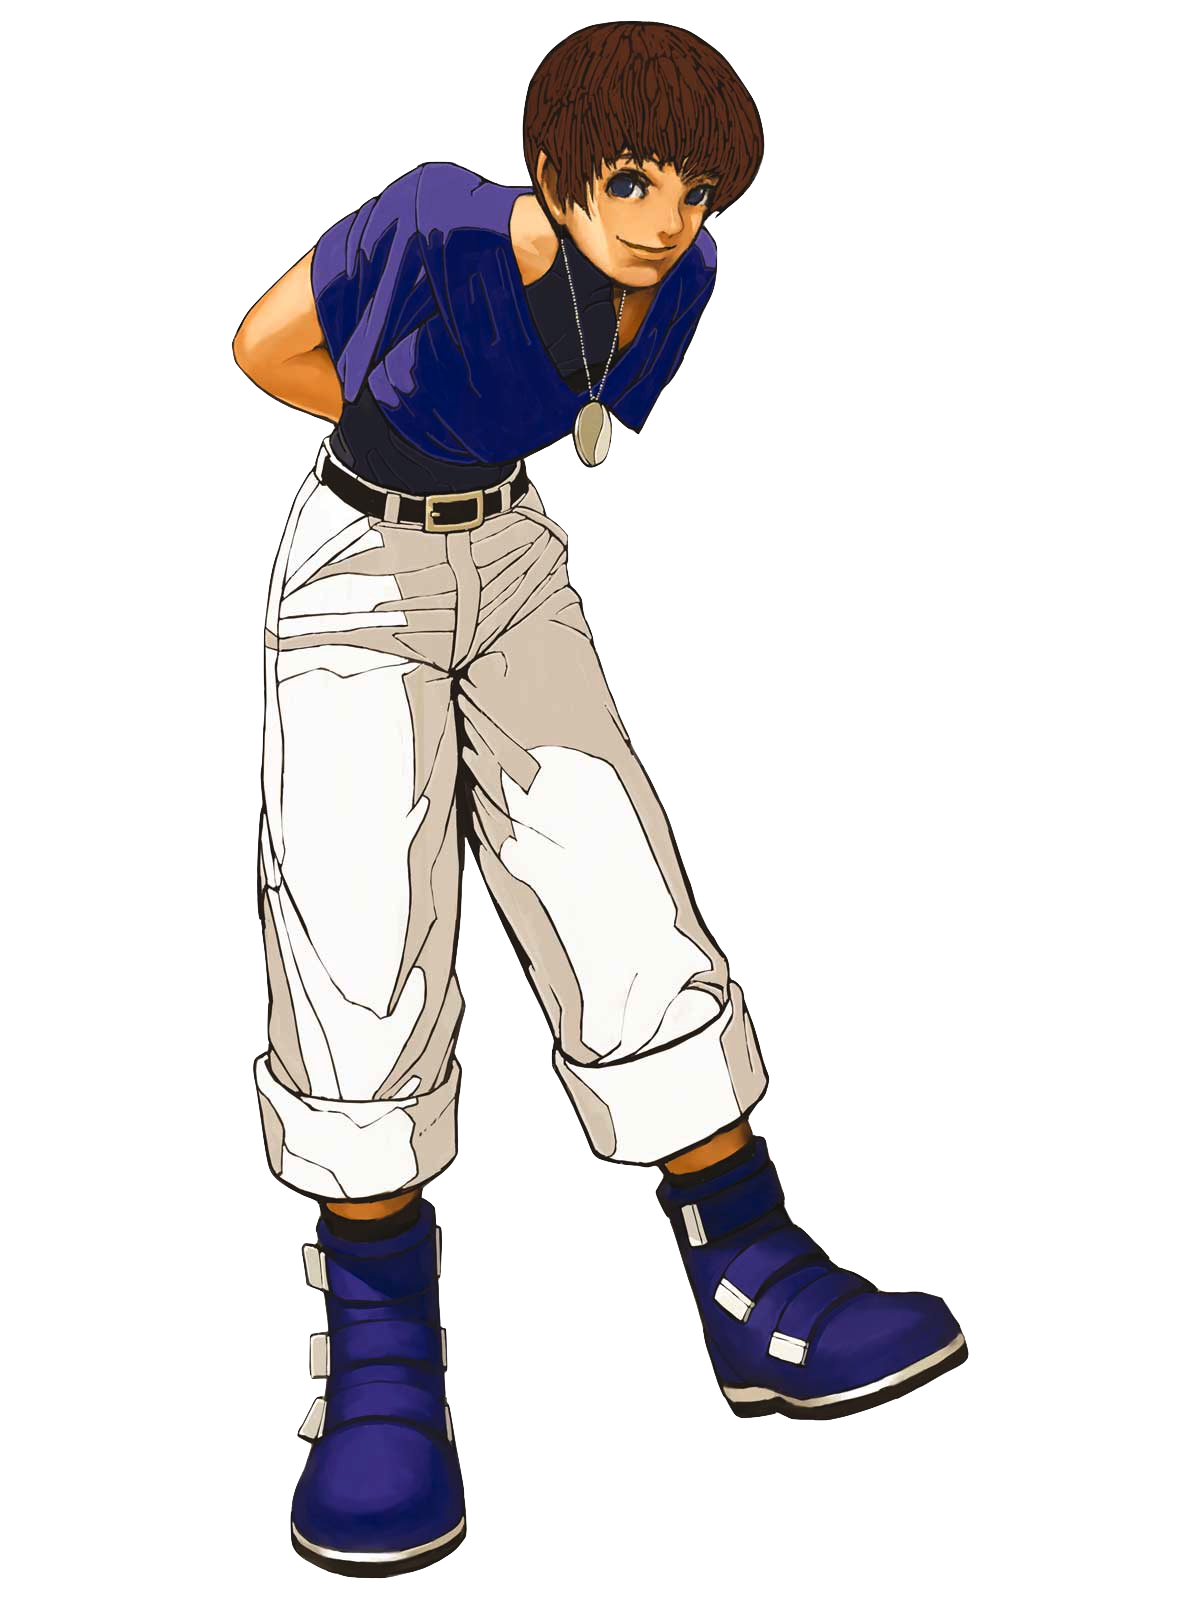 Chris (King of Fighters)